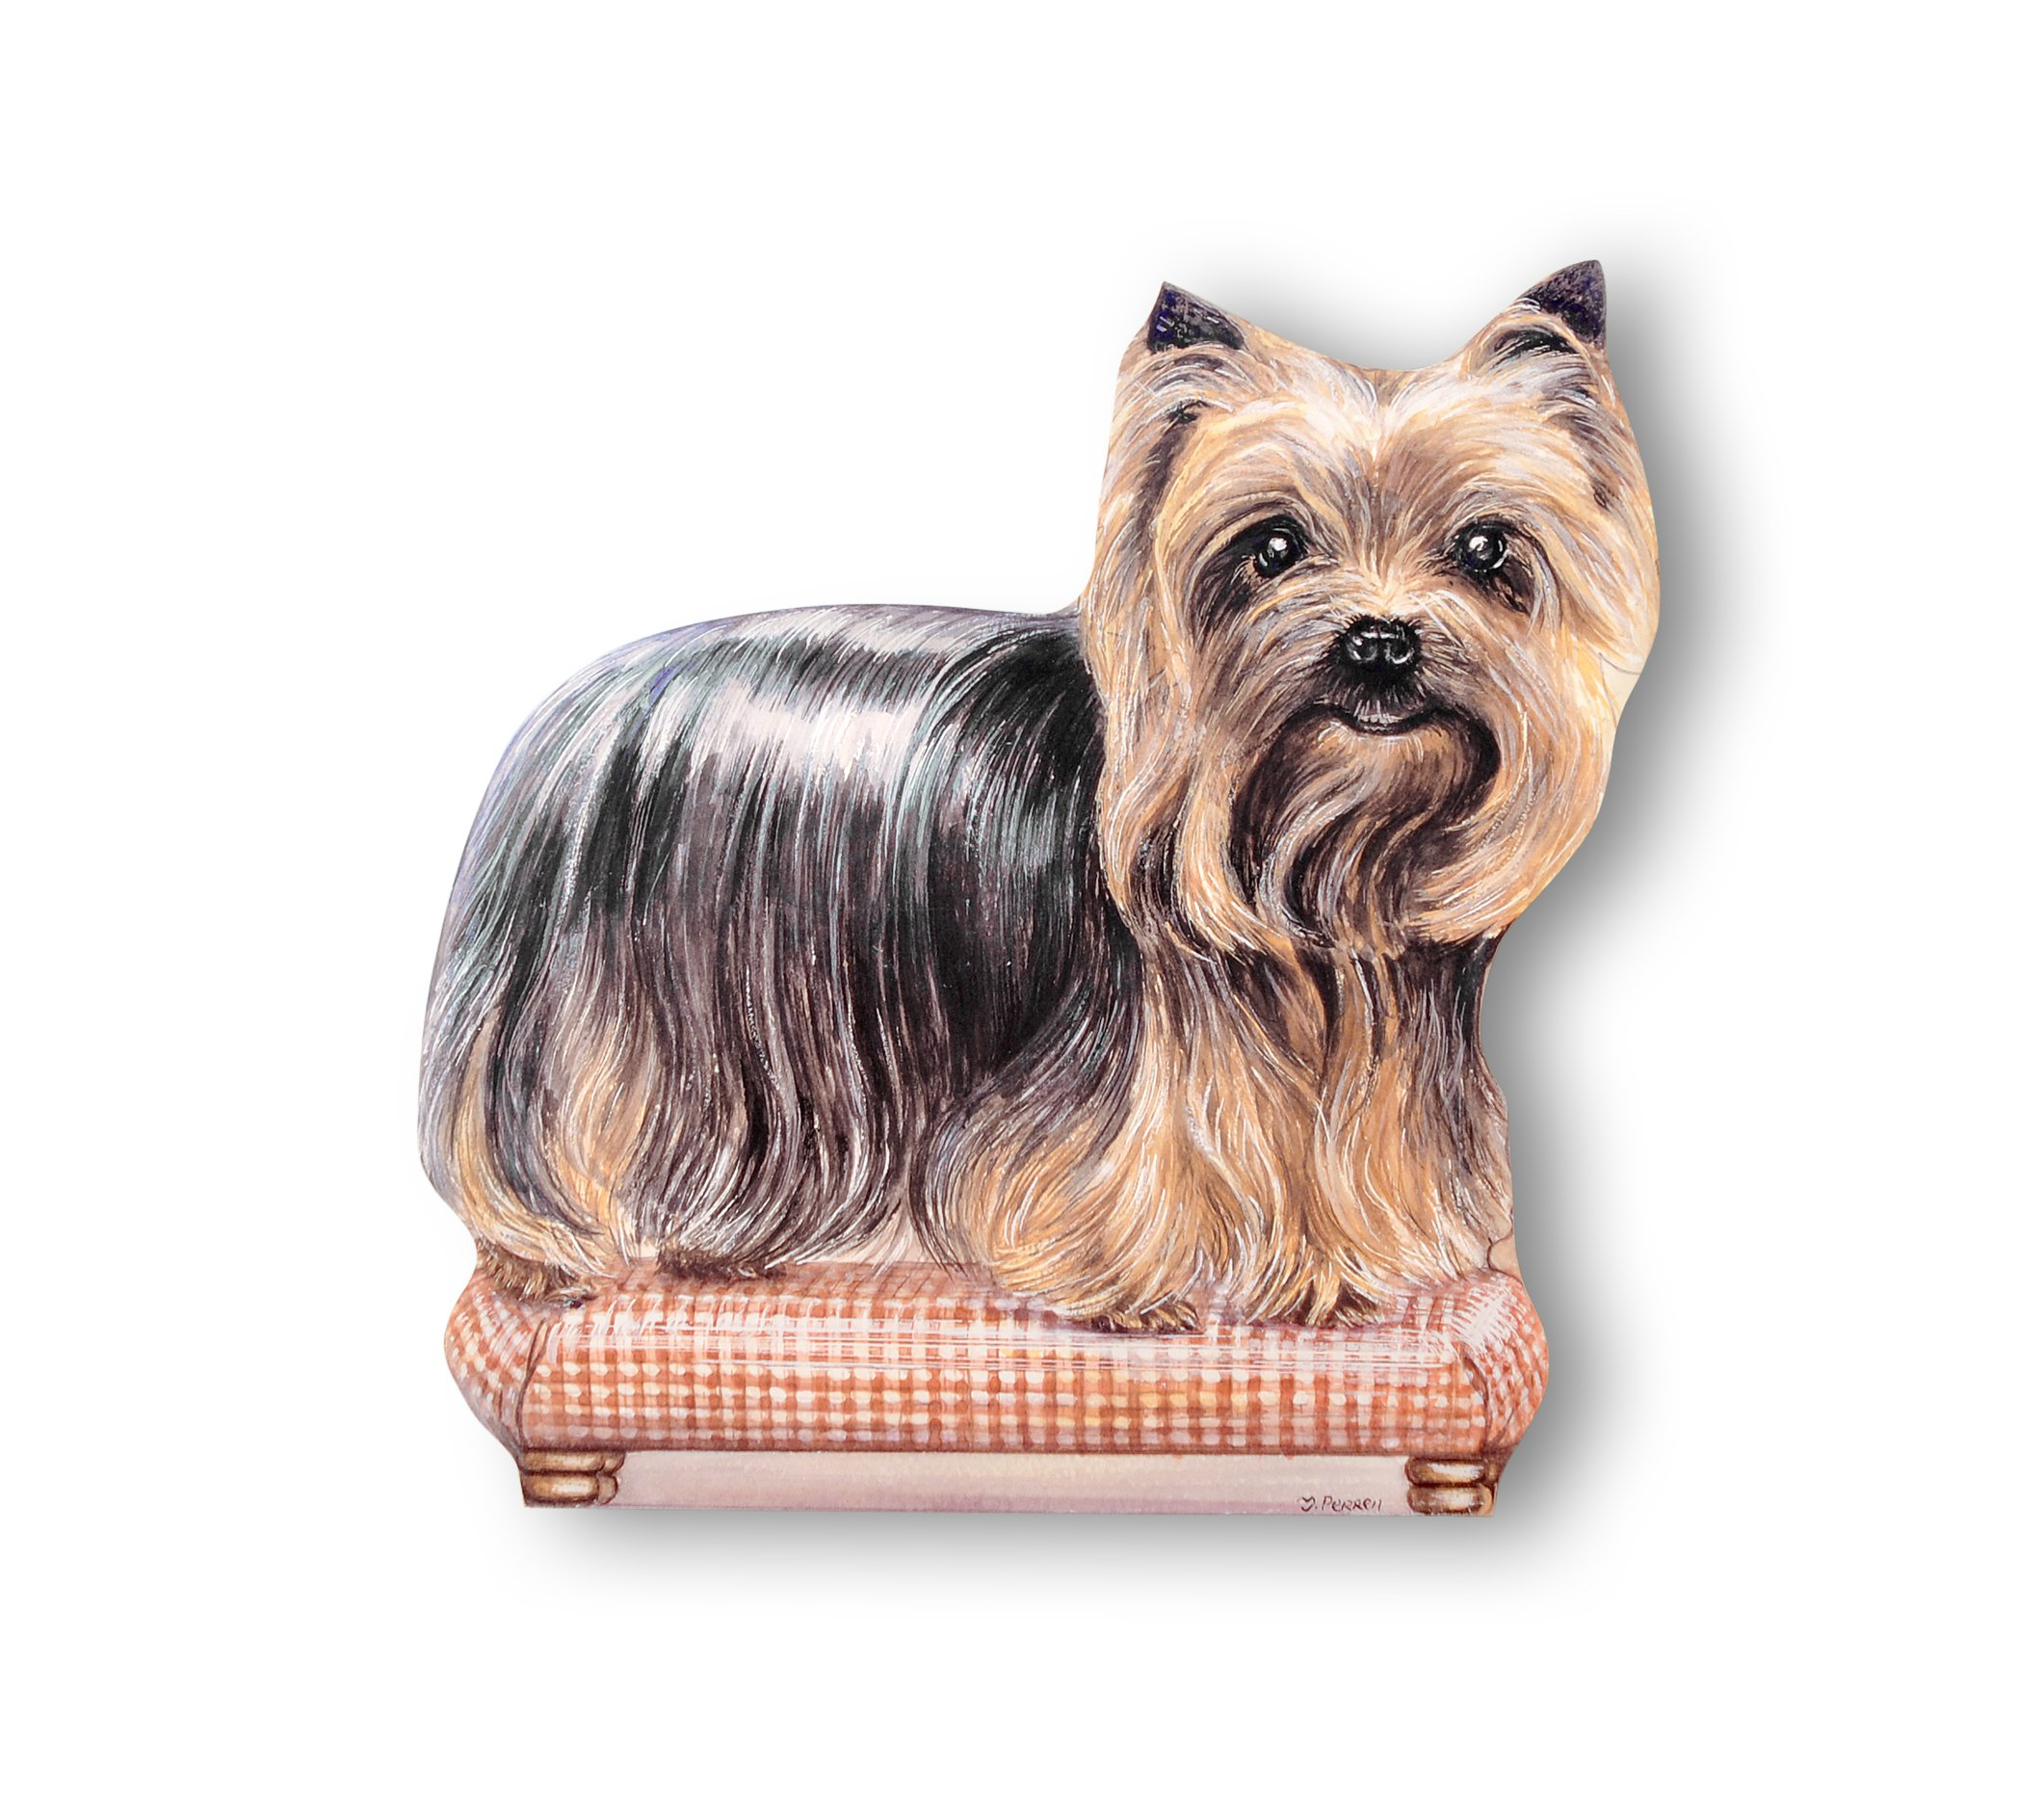 Stupell Home Décor Yorkie Decorative Dog Door Stop, 14 x 0.5 x 17, Proudly Made in USA